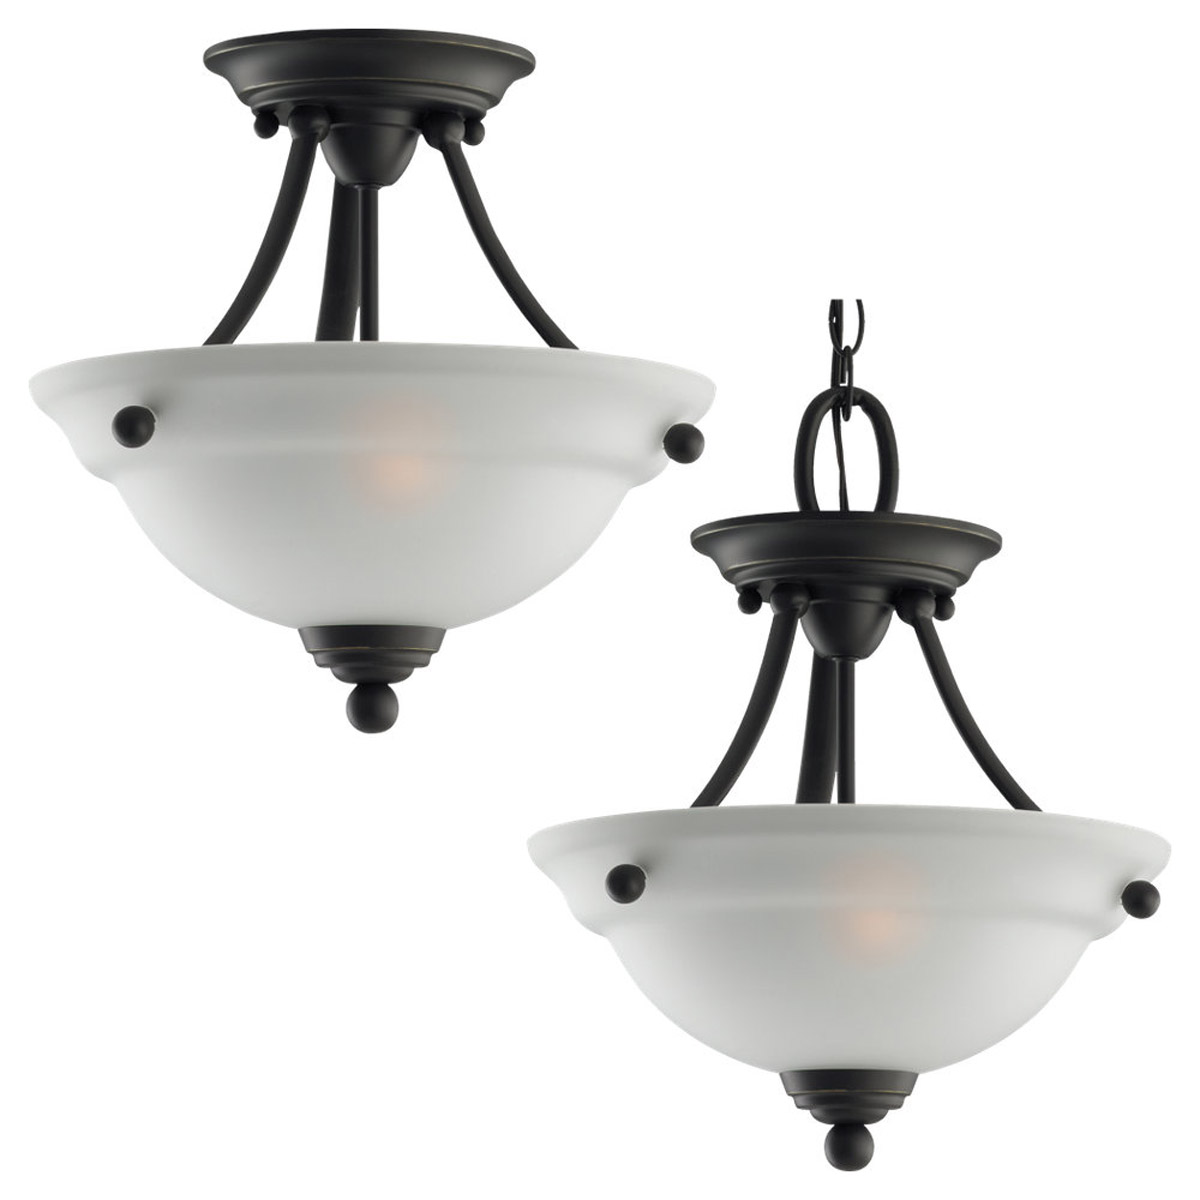 Sea Gull Lighting Wheaton 2 Light Semi-Flush Mount in Heirloom Bronze 77625-782